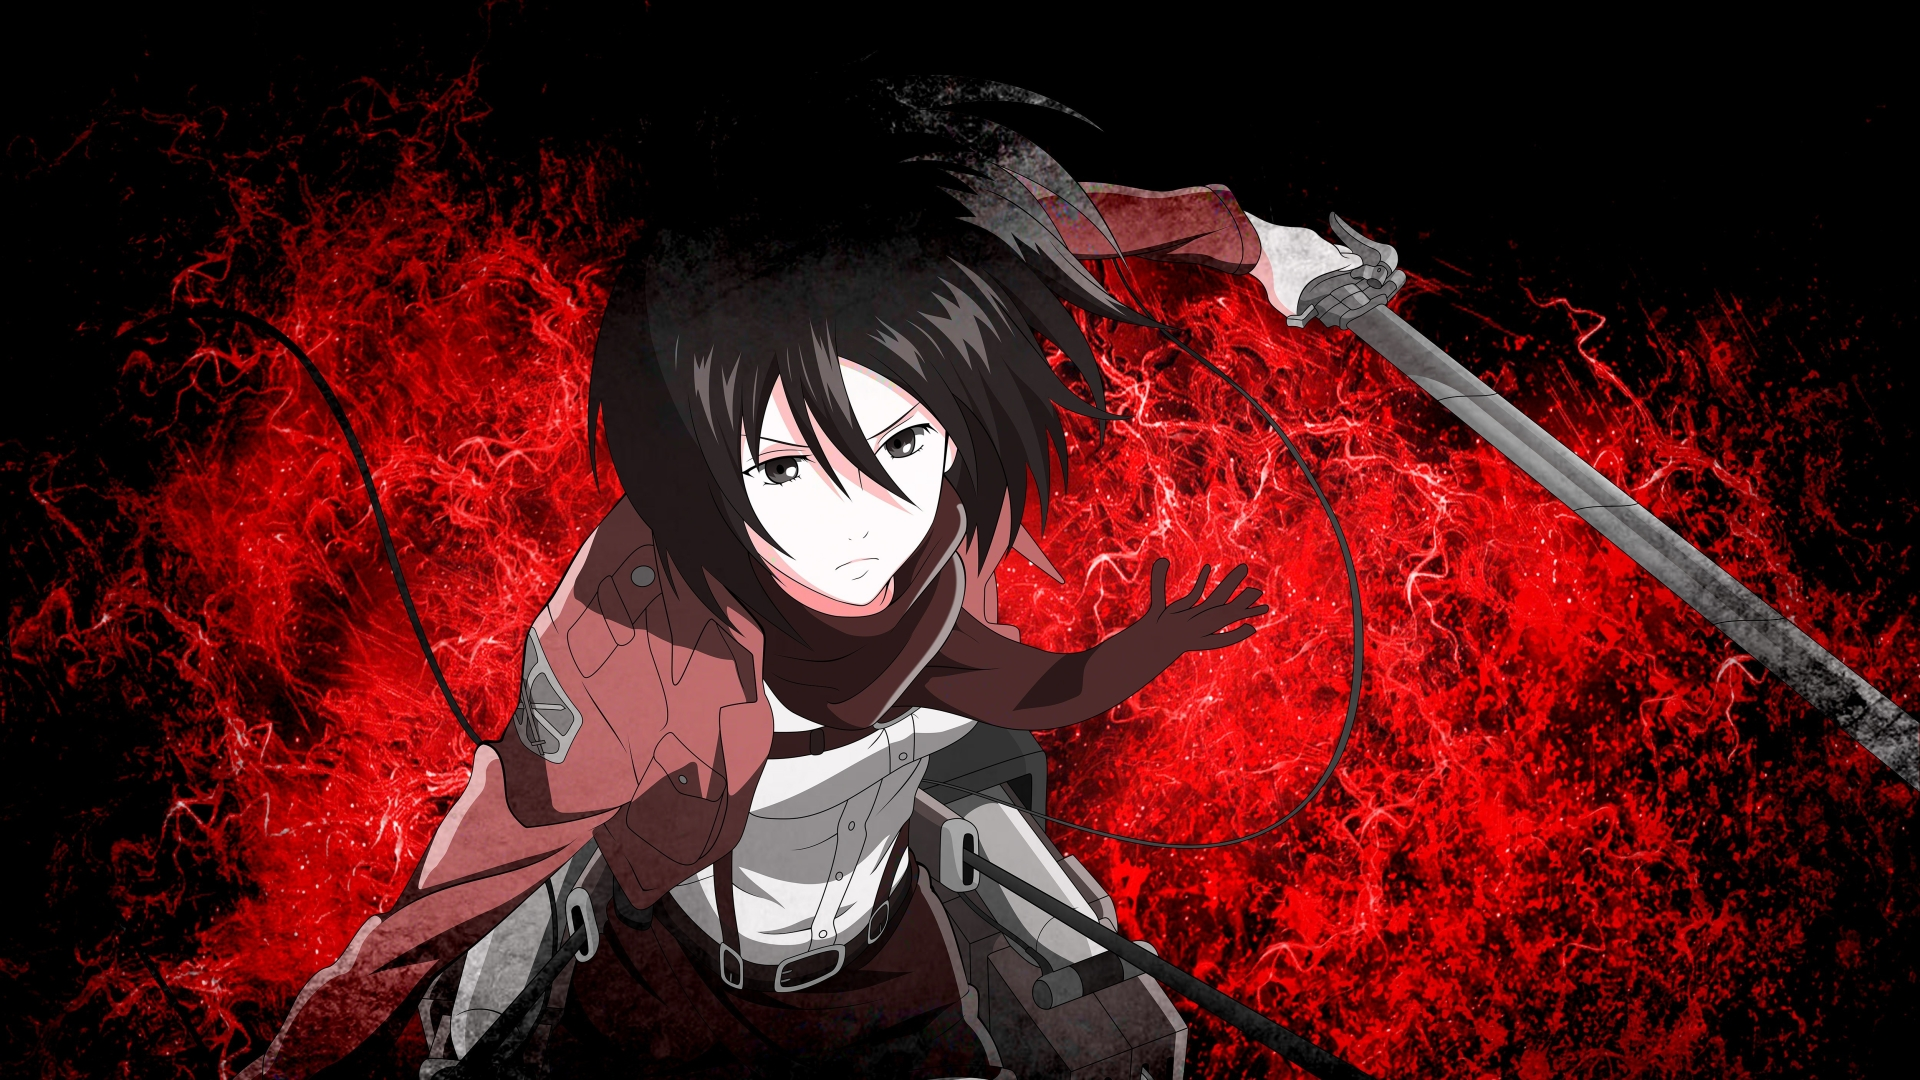 1920x1080 Mikasa Ackerman 5k 1080p Laptop Full Hd Wallpaper Hd Anime 4k Wallpapers Images Photos And Background